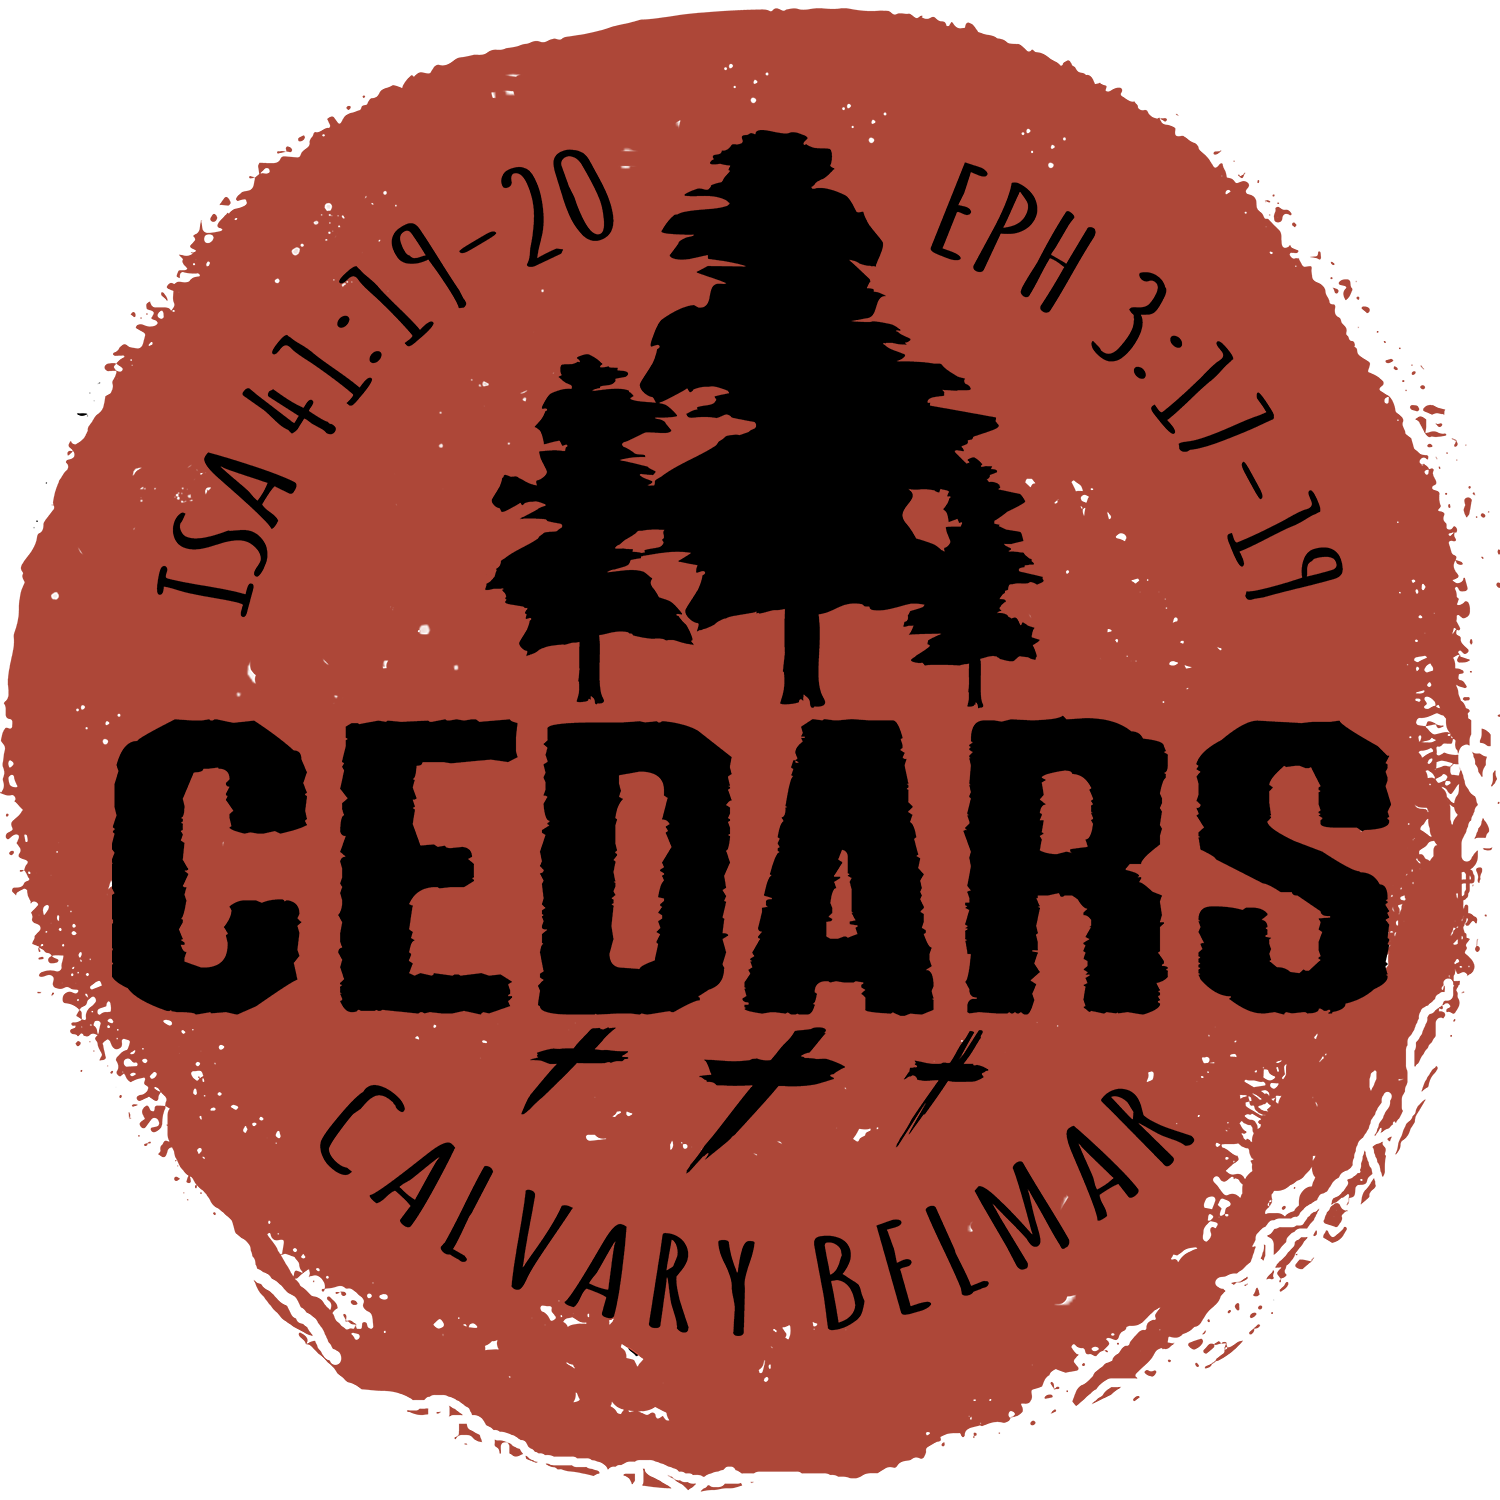 Cedars Stickers.png